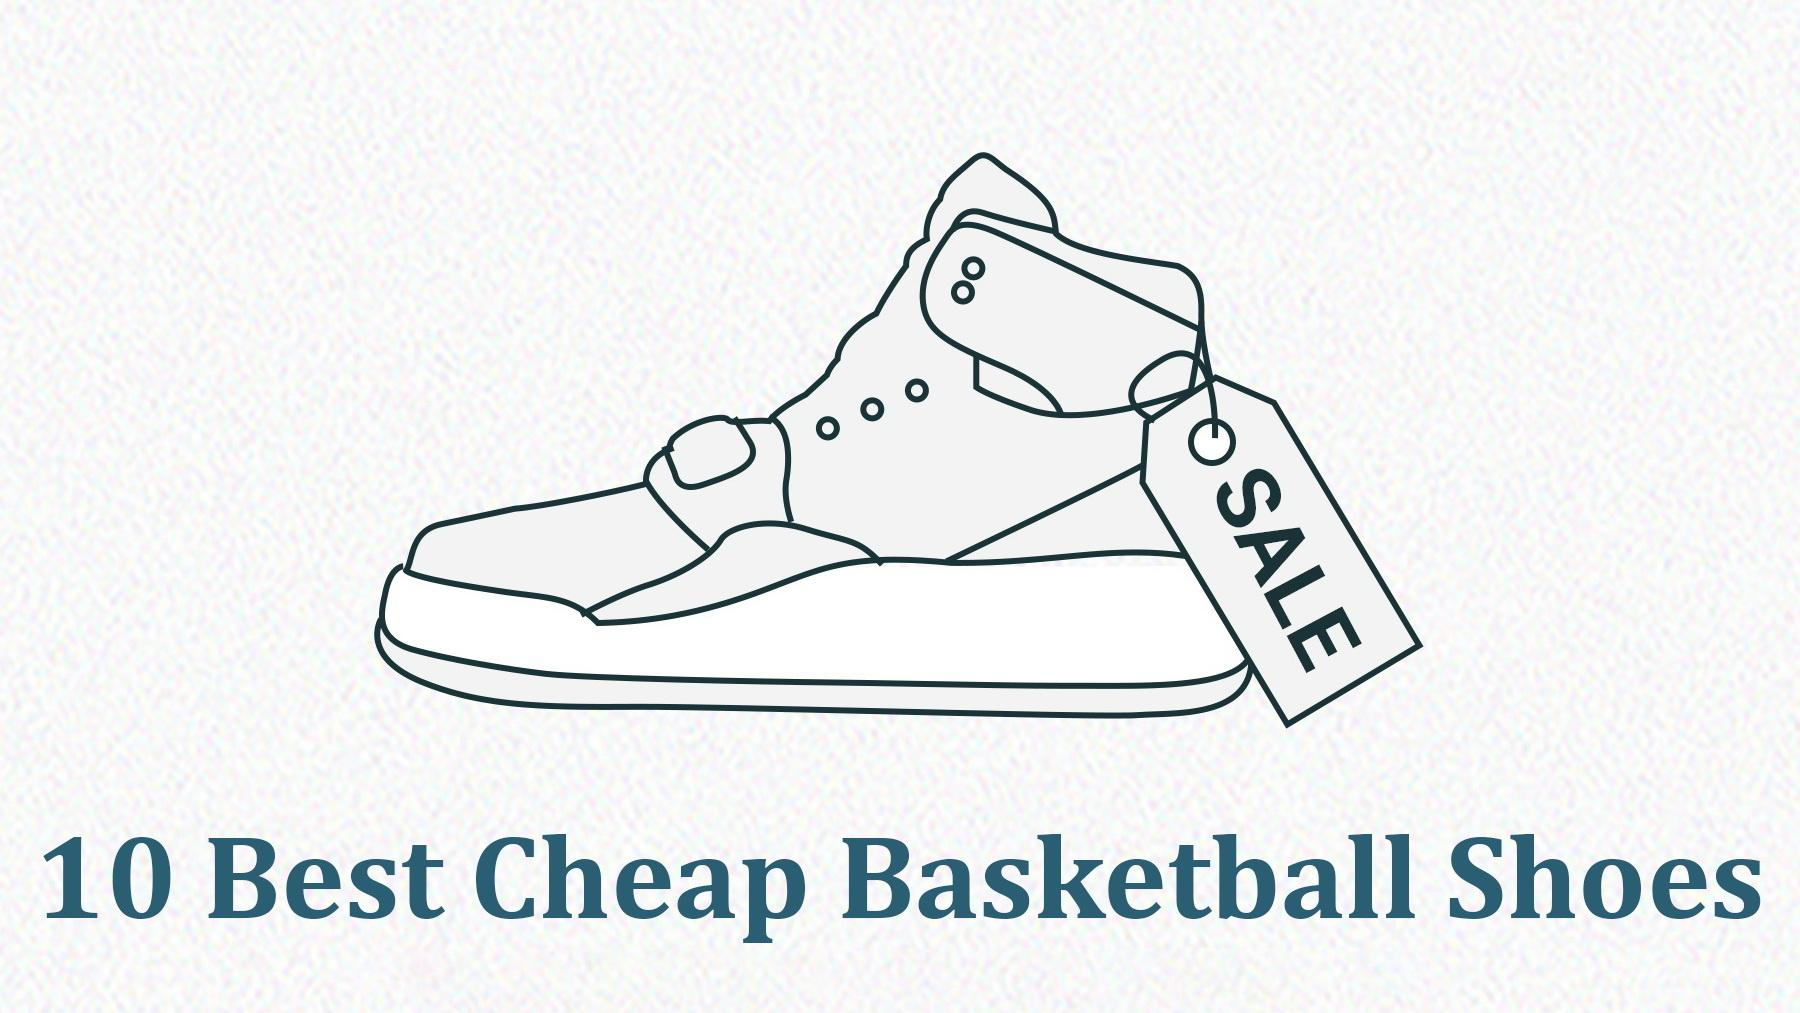 10 Best Cheap Basketball Shoes in 2021